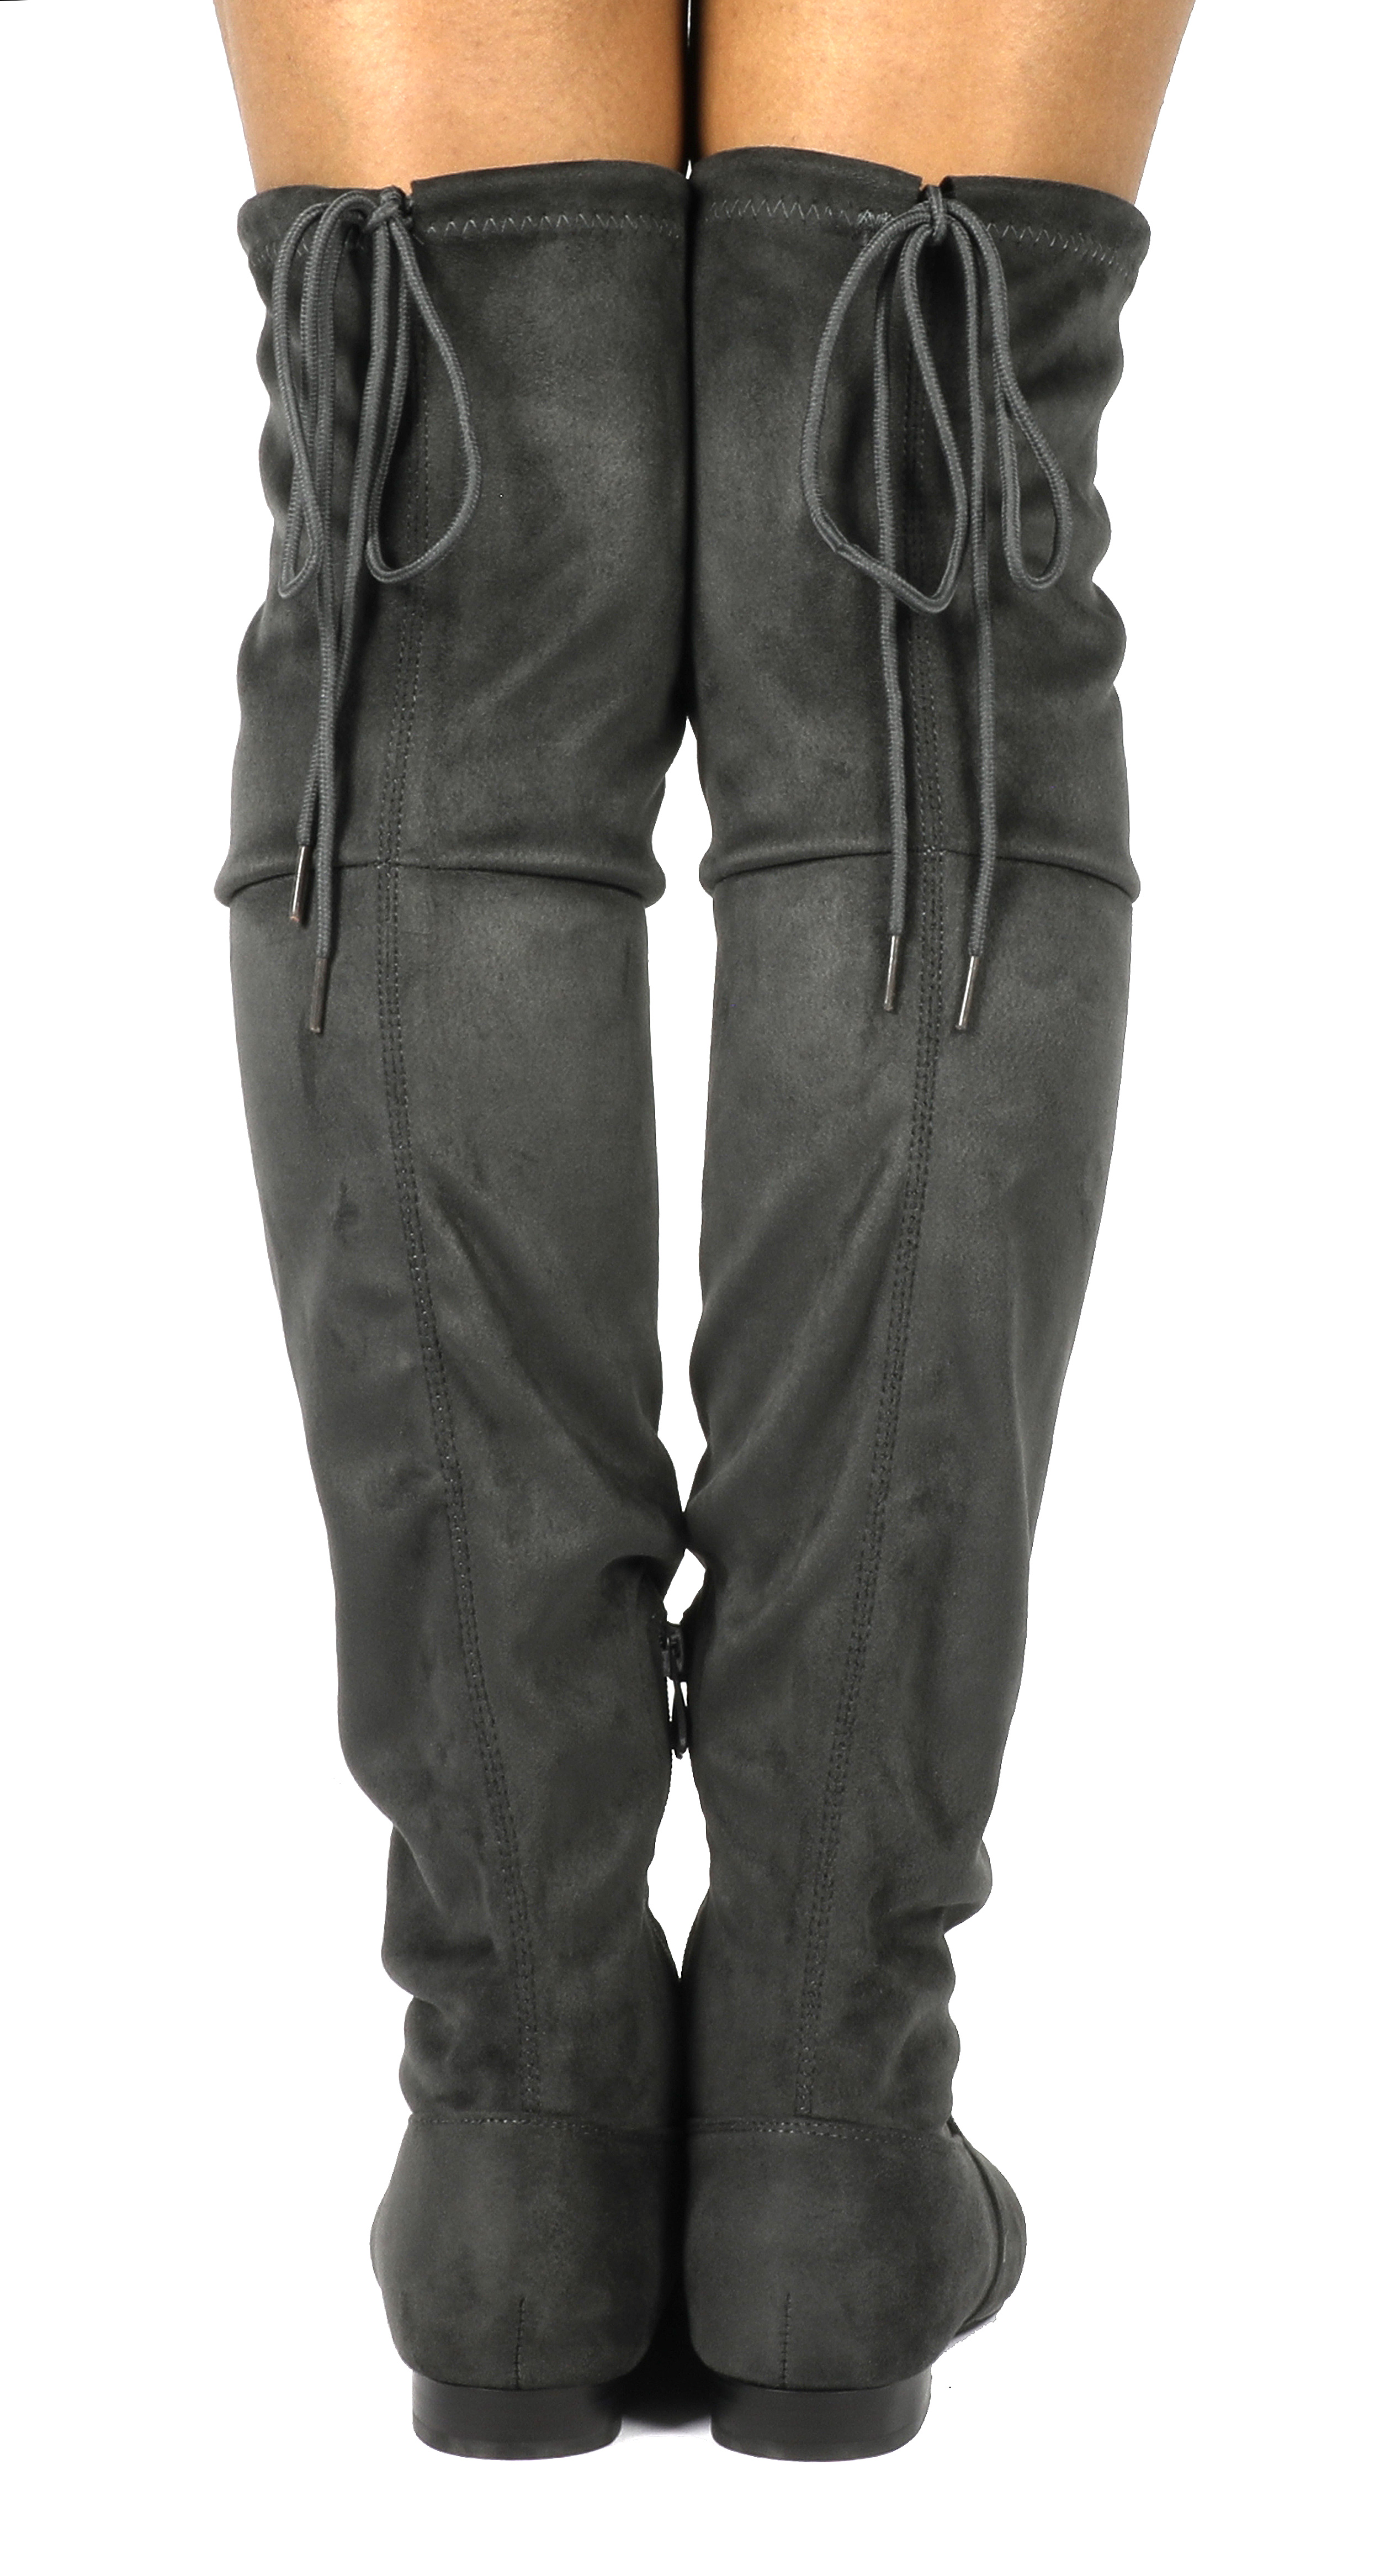 Women-Thigh-High-Flat-Boots-Stretchy-Drawstring-Tie-Fashion-Over-The-Knee-Boots miniatuur 4